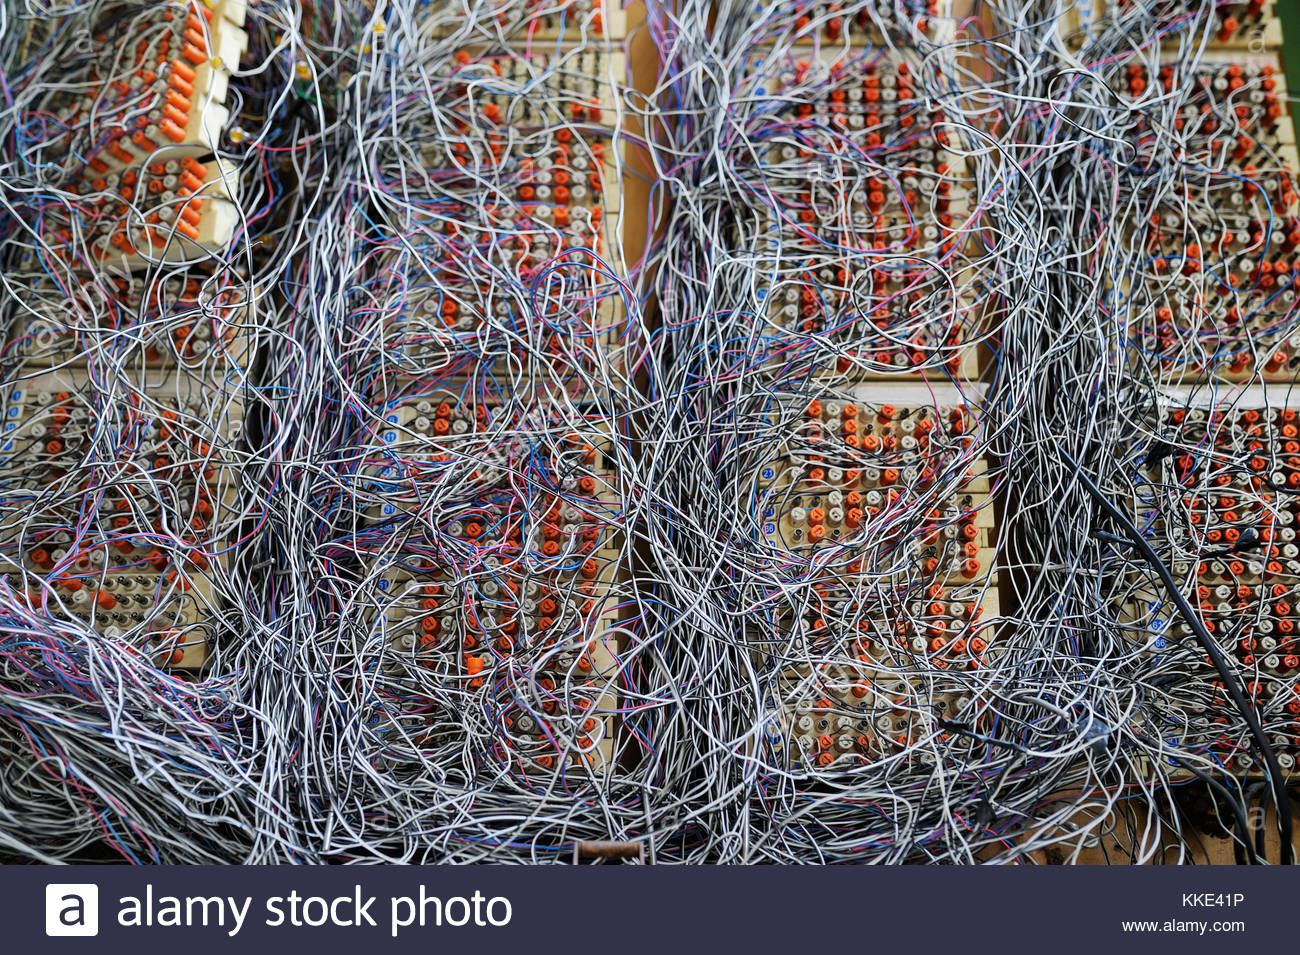 Astounding Switchboard Panel In Datacenter With Messy Cables Connections Stock Wiring Cloud Usnesfoxcilixyz